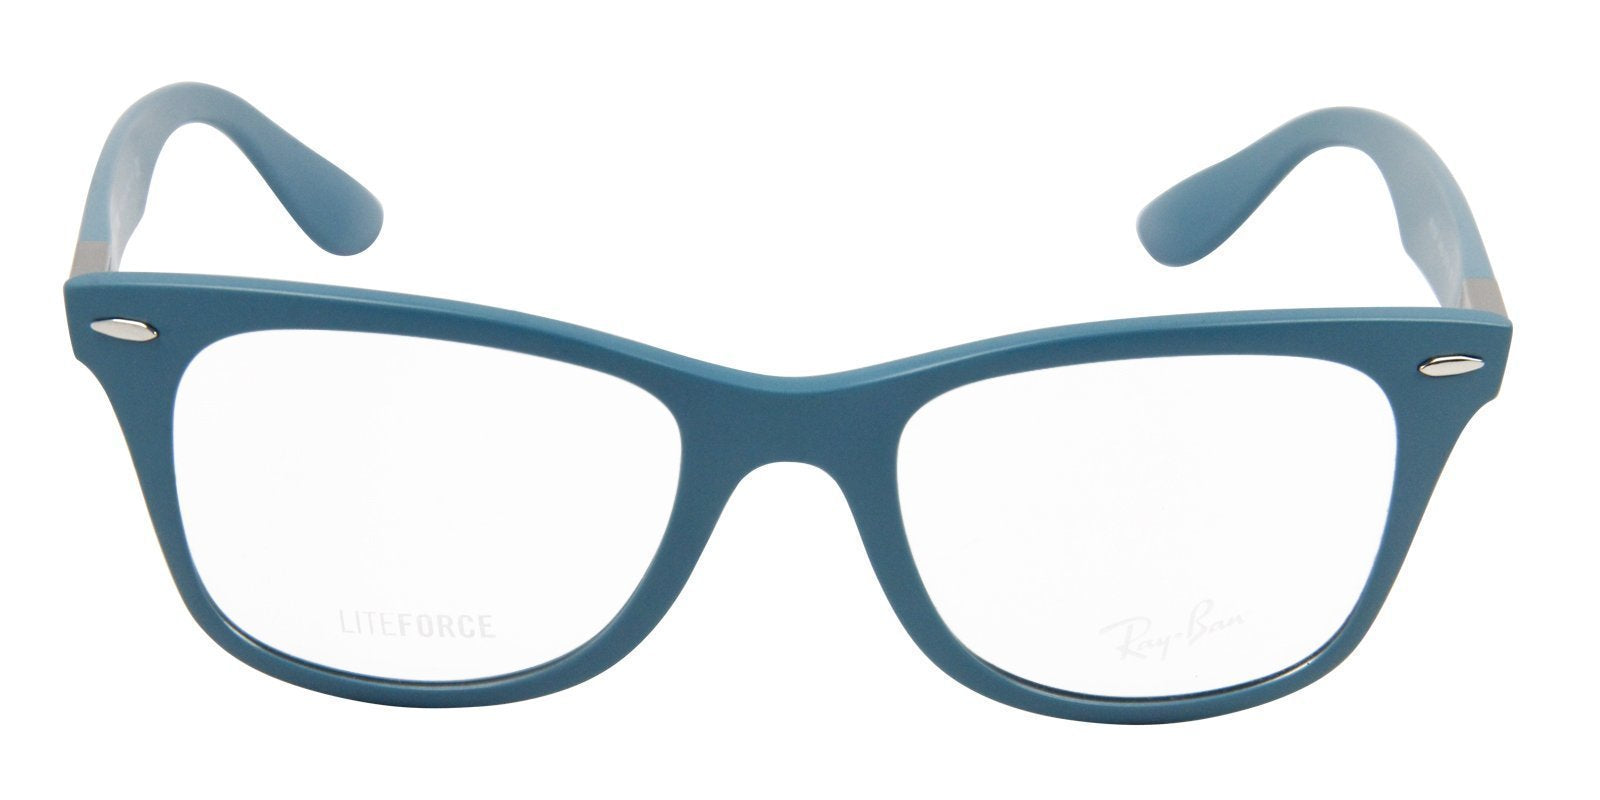 Ray Ban Rx - RX7034 Blue Oval Unisex Eyeglasses - 50mm-Eyeglasses-Designer Eyes